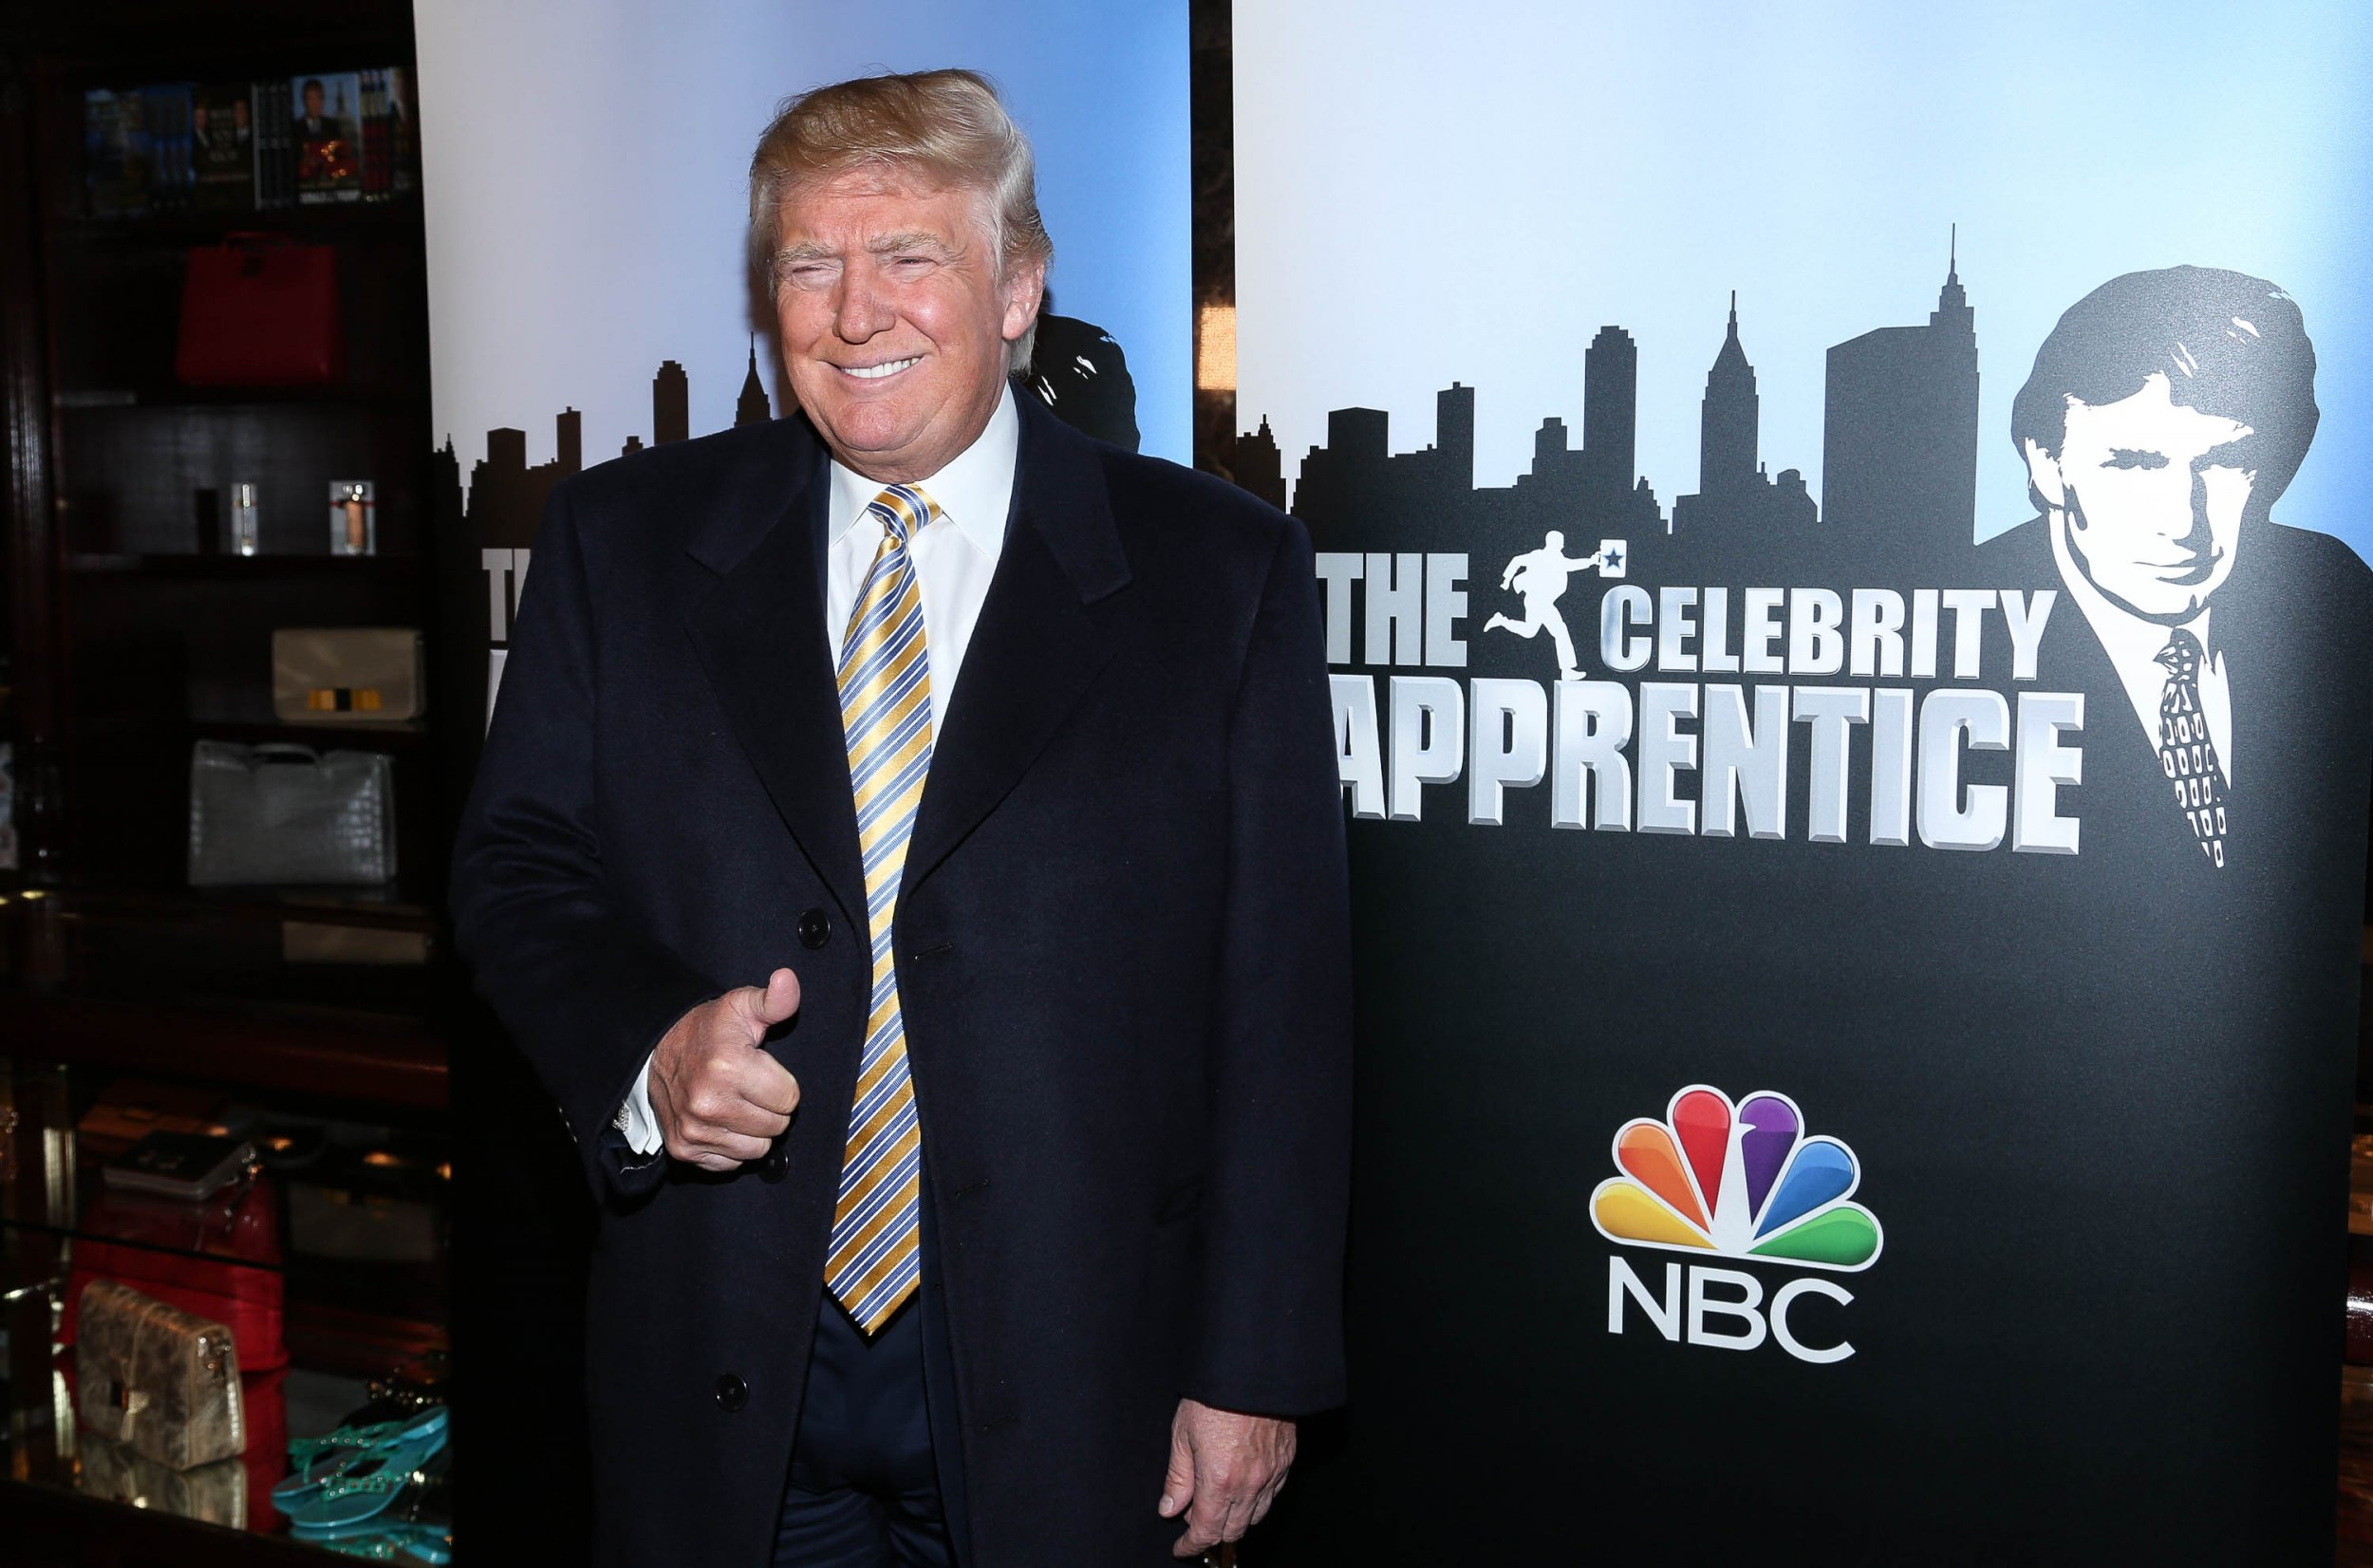 Lawyers Issue Subpoenas for 'Apprentice' Tapes for Evidence of Donald Trump Being Racist